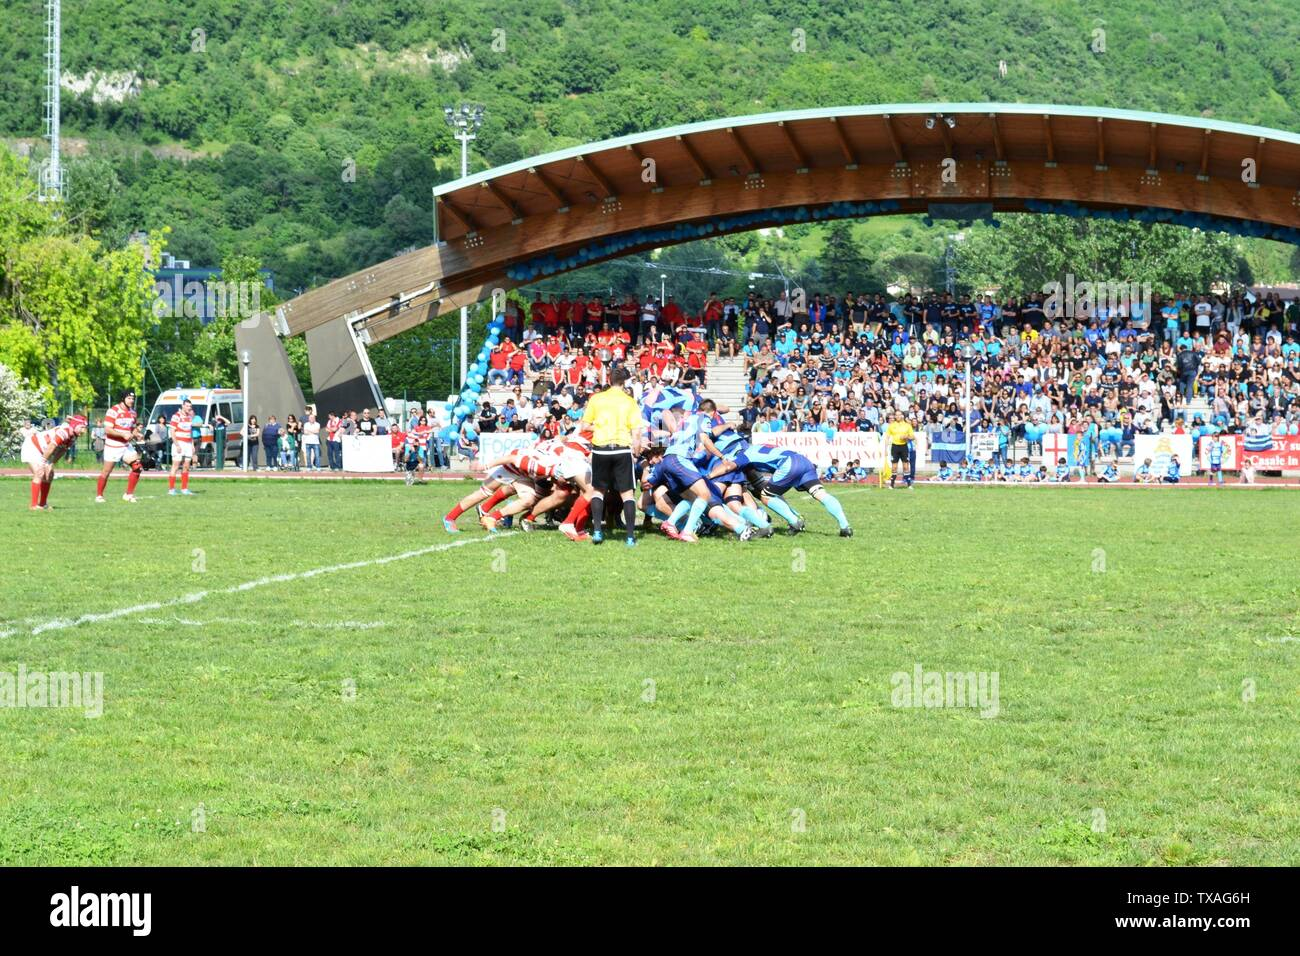 Lecco/Italy - May 24, 2015: Start of the rugby match between Rugby Lecco and ASD Rugby Casale on the sports field Bione of Lecco. Stock Photo